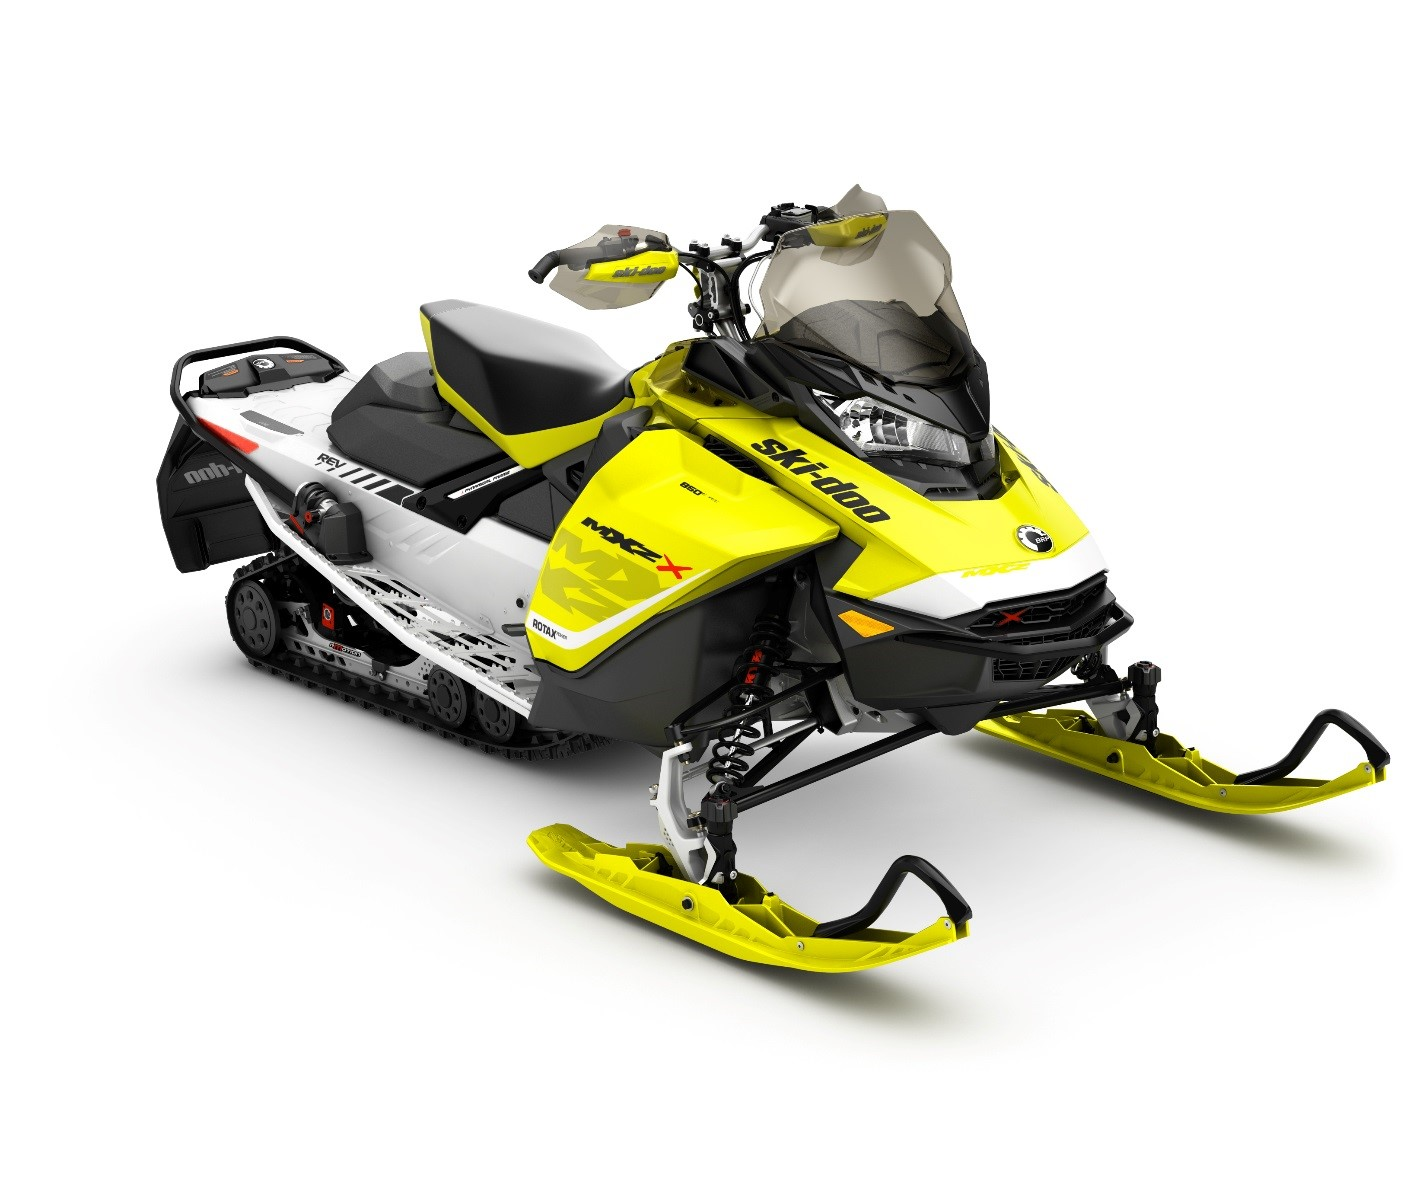 Recalled MXZ X 850 E-TEC Yellow